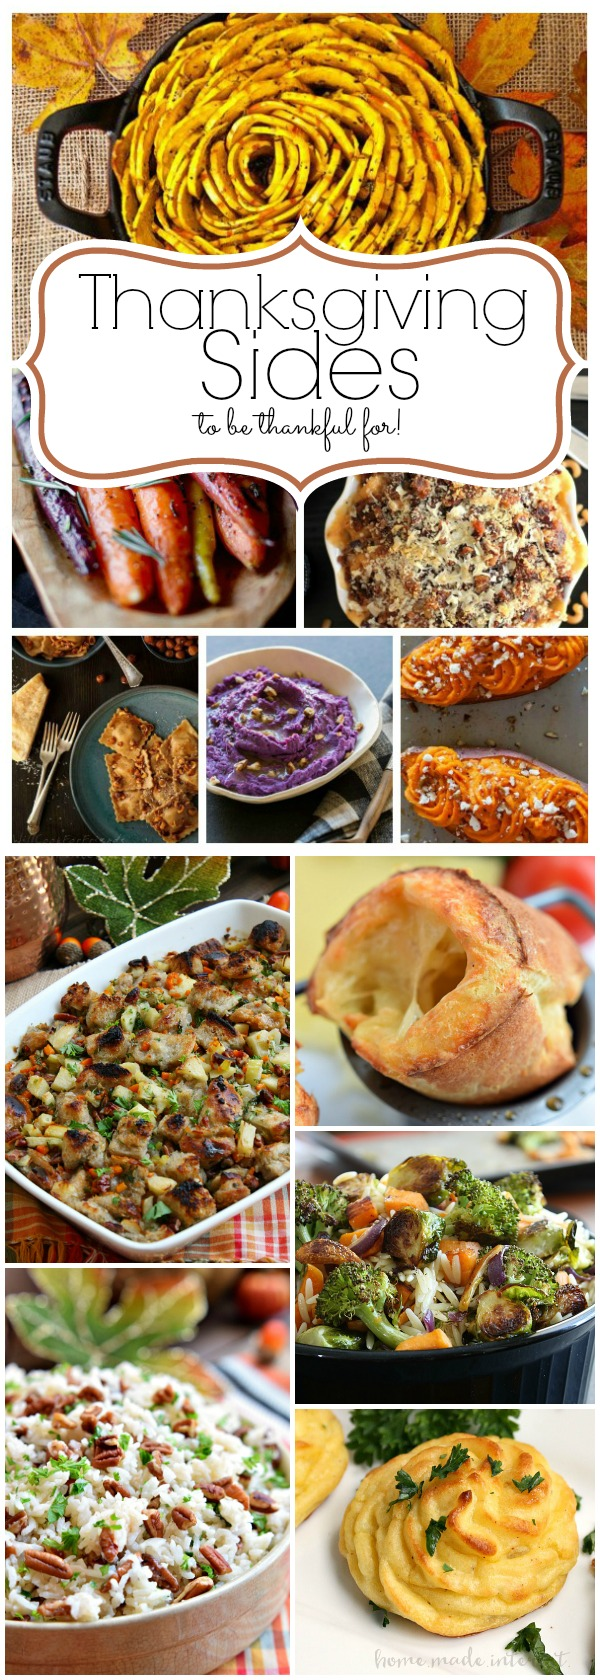 Some of the best Thanksgiving side dish recipes you can find. Everything from roasted vegetables, to mashed potatoes. These Thanksgiving sides are going to make Thanksgiving dinner amazing.